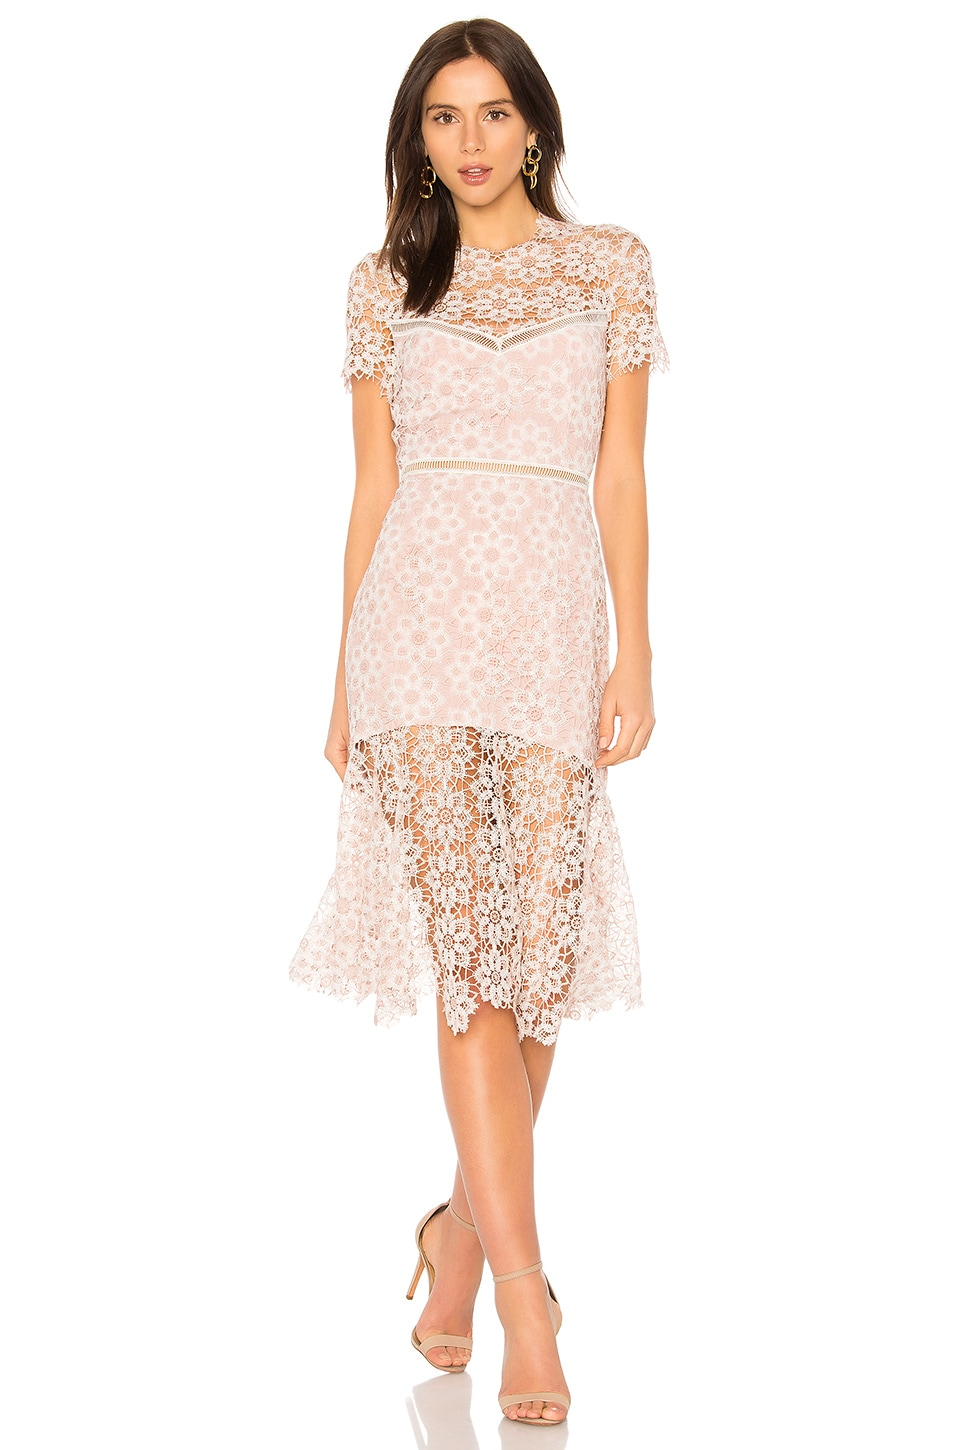 SAYLOR Lillie Dress in Ivory & Blush